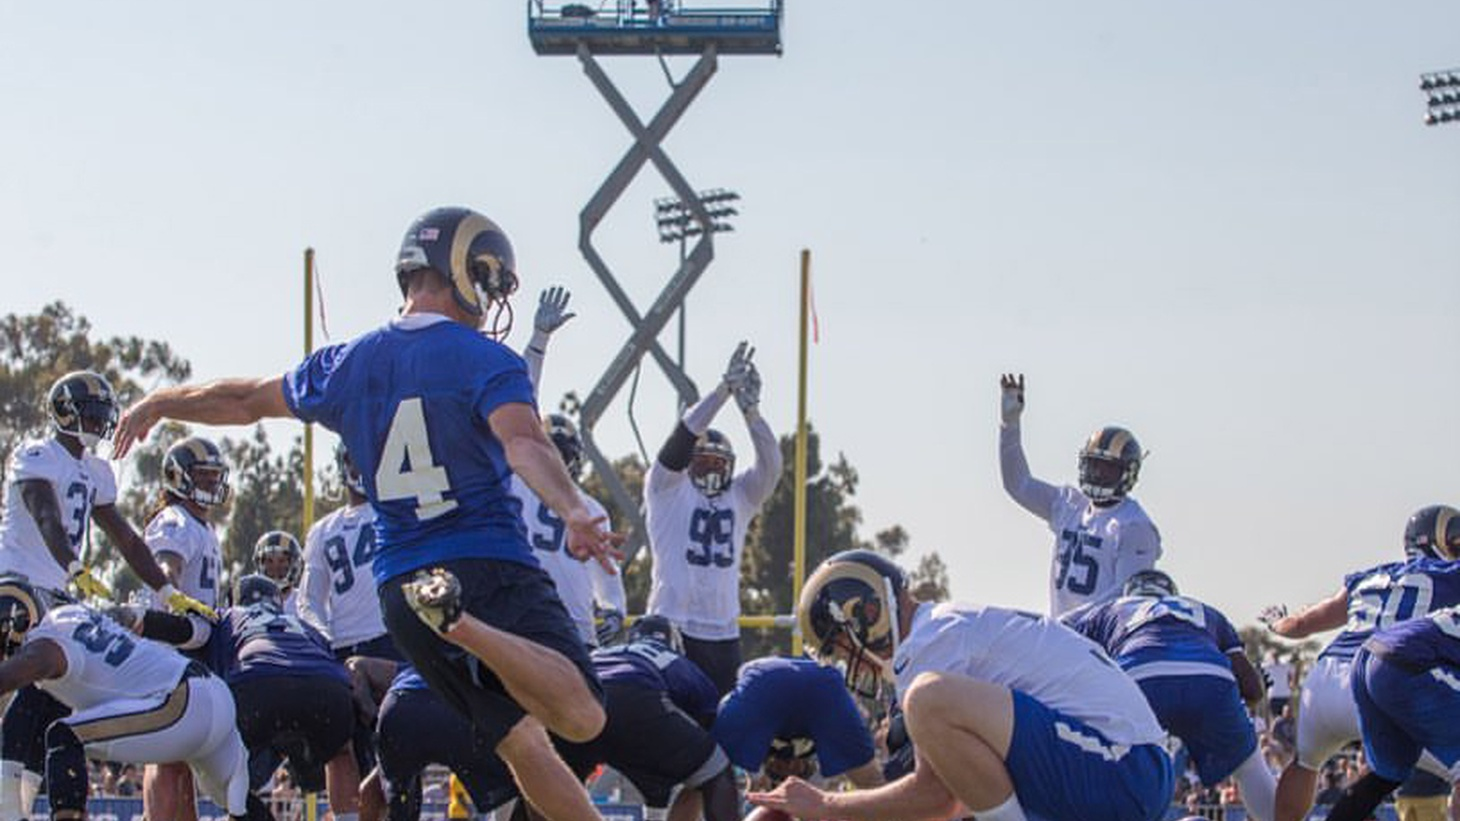 Twenty-one years after the last professional football game was played in Los Angeles, the Rams will hit the field at LA's Coliseum in just a few weeks. But what if they're a losing team? Will the excitement last?